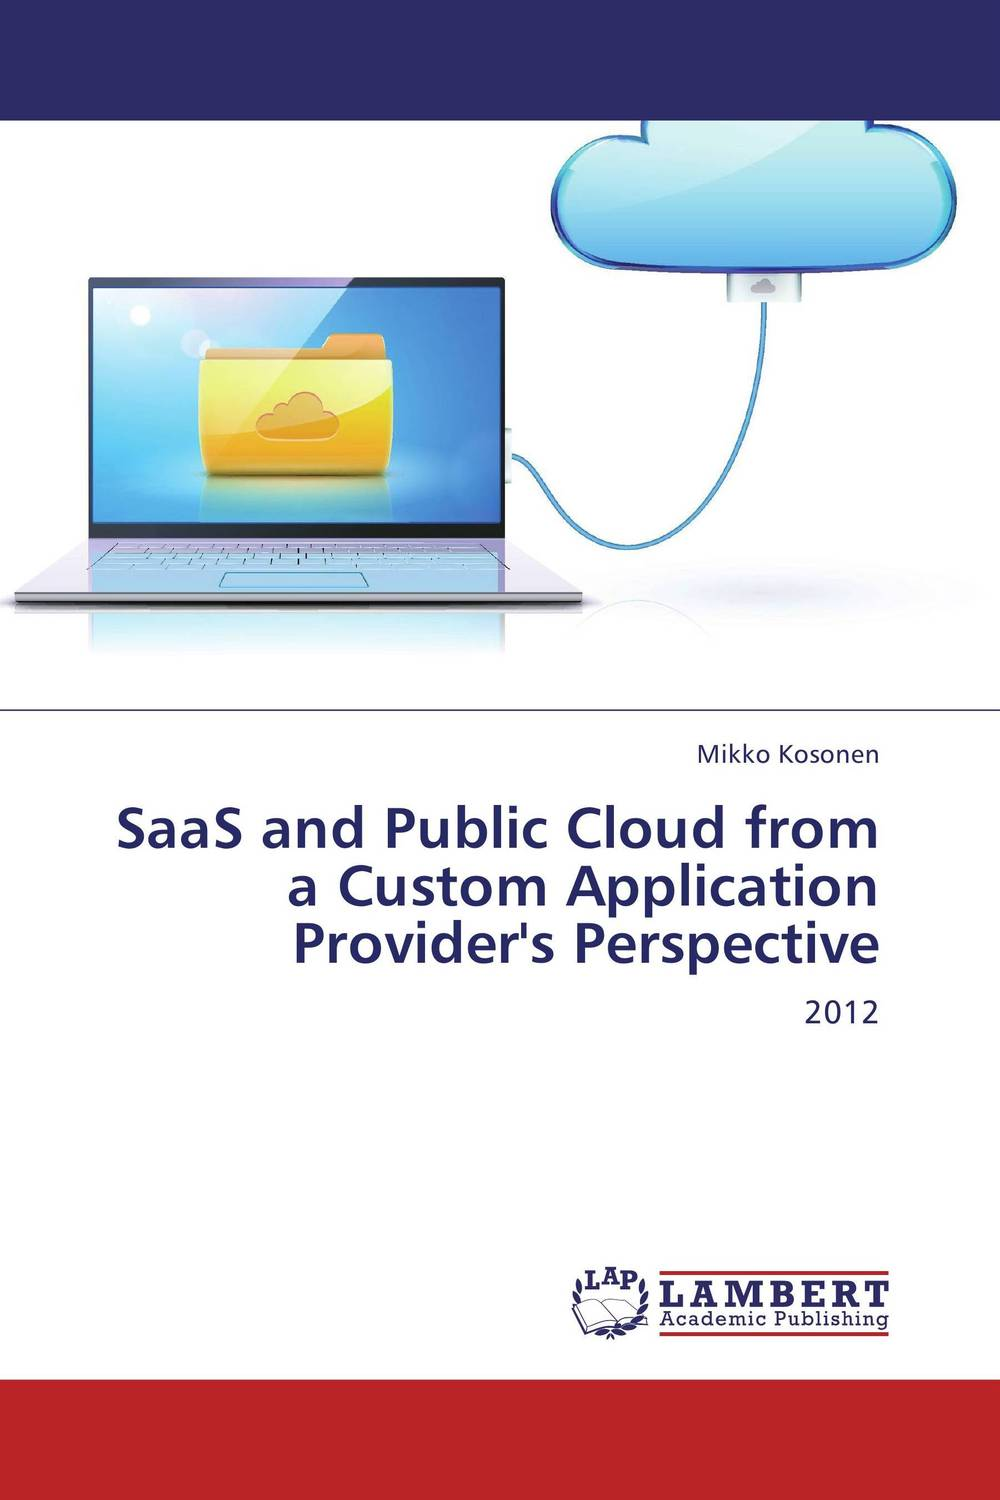 SaaS and Public Cloud from a Custom Application Provider's Perspective evolution towards cloud